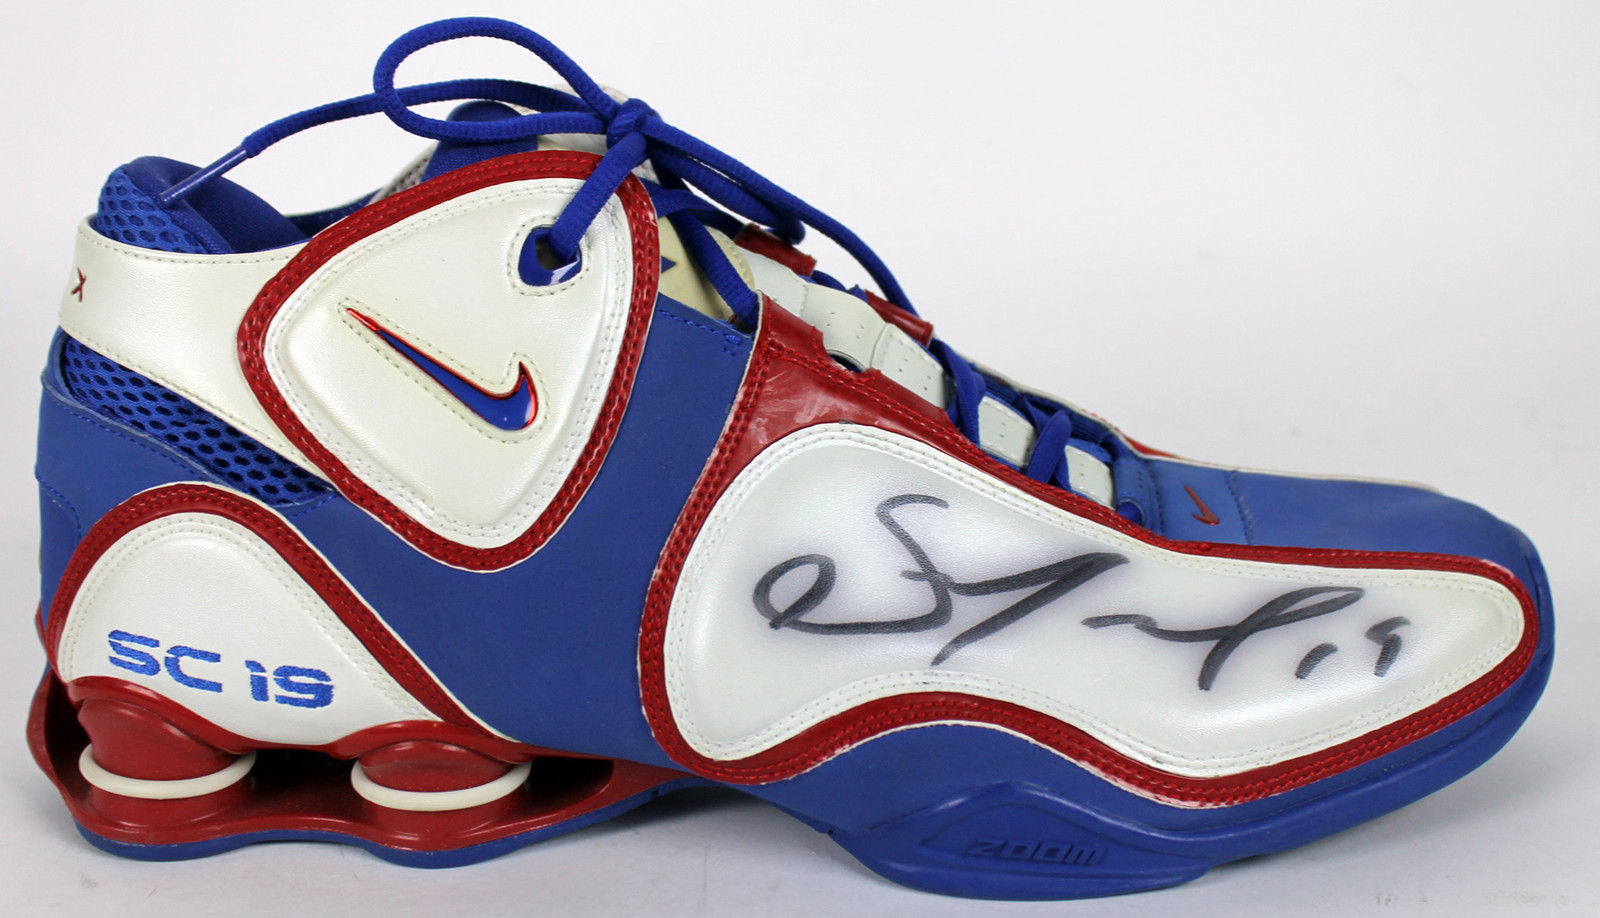 sports shoes b19ec 60c87 ... Sam Cassell Game Used   Signed Nike Shox Bounce Basketball Sneakers  (BAS Beckett) ...